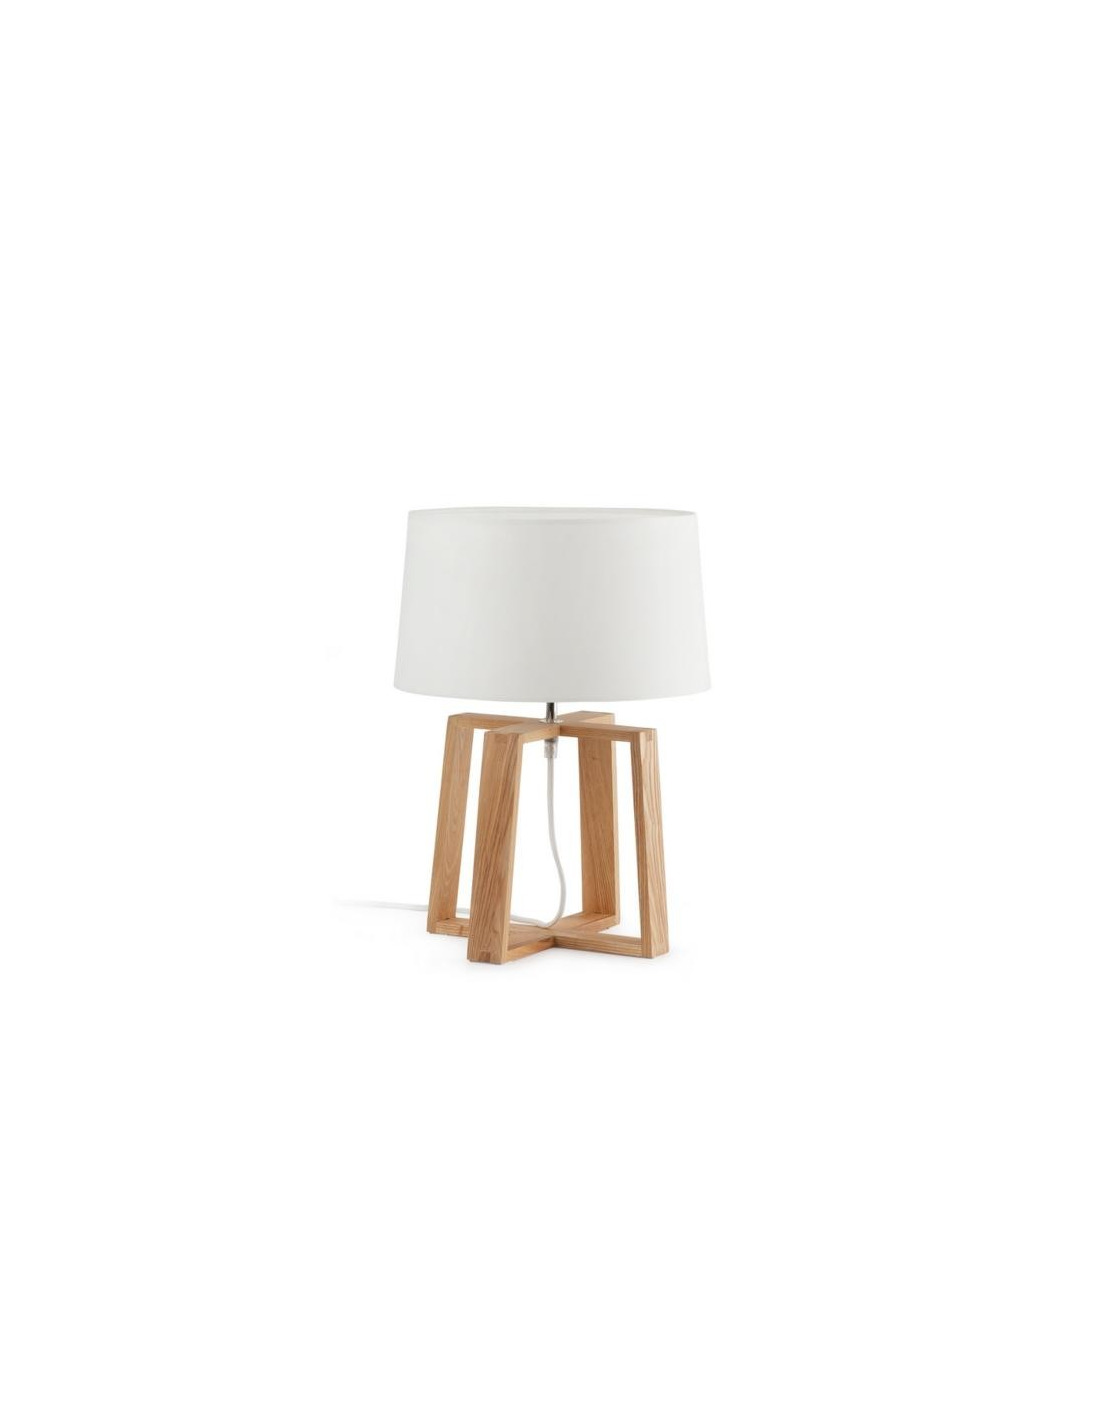 lampe poser kia en bois au design scandinave et moderne otoko. Black Bedroom Furniture Sets. Home Design Ideas